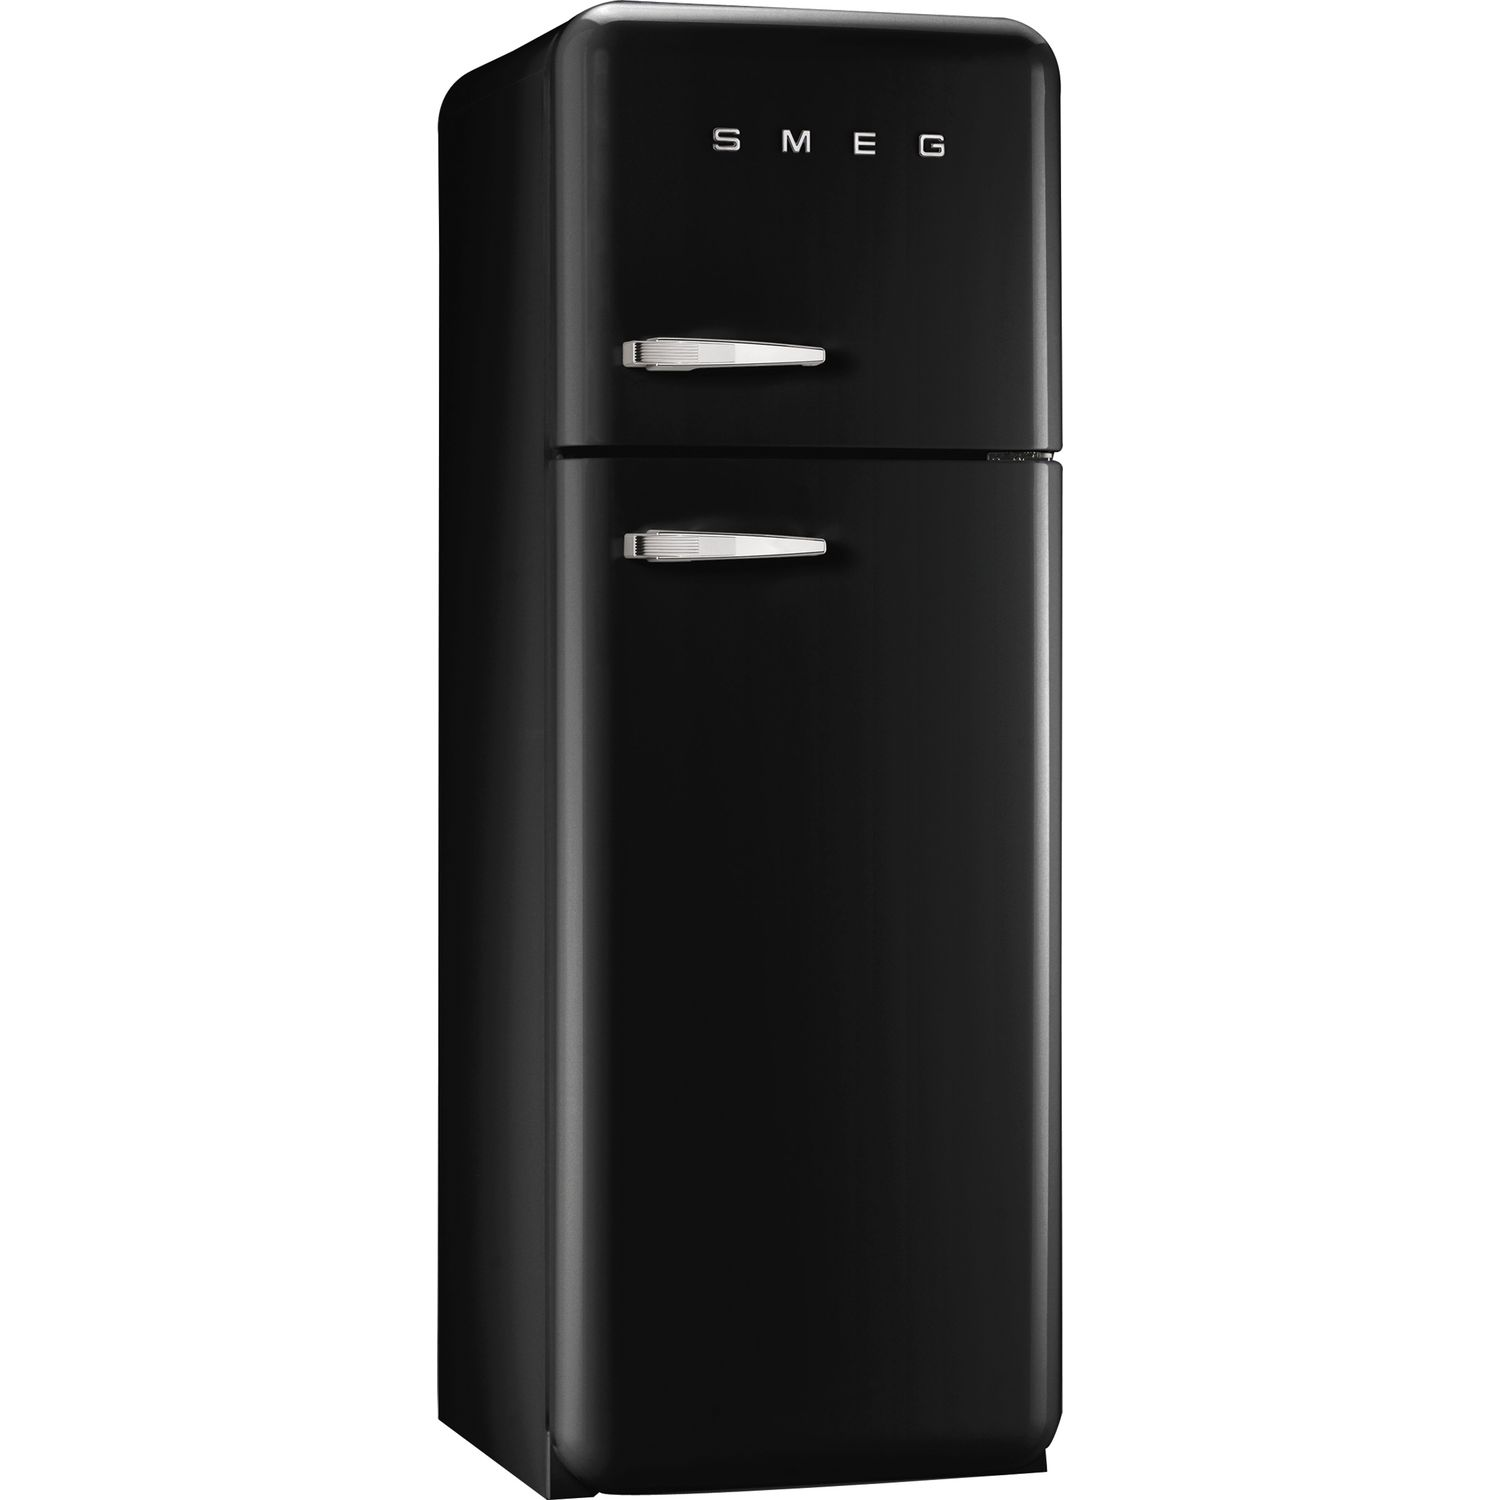 smeg standk hlschrank m gefrierraum fab30lne1 a schwarz. Black Bedroom Furniture Sets. Home Design Ideas